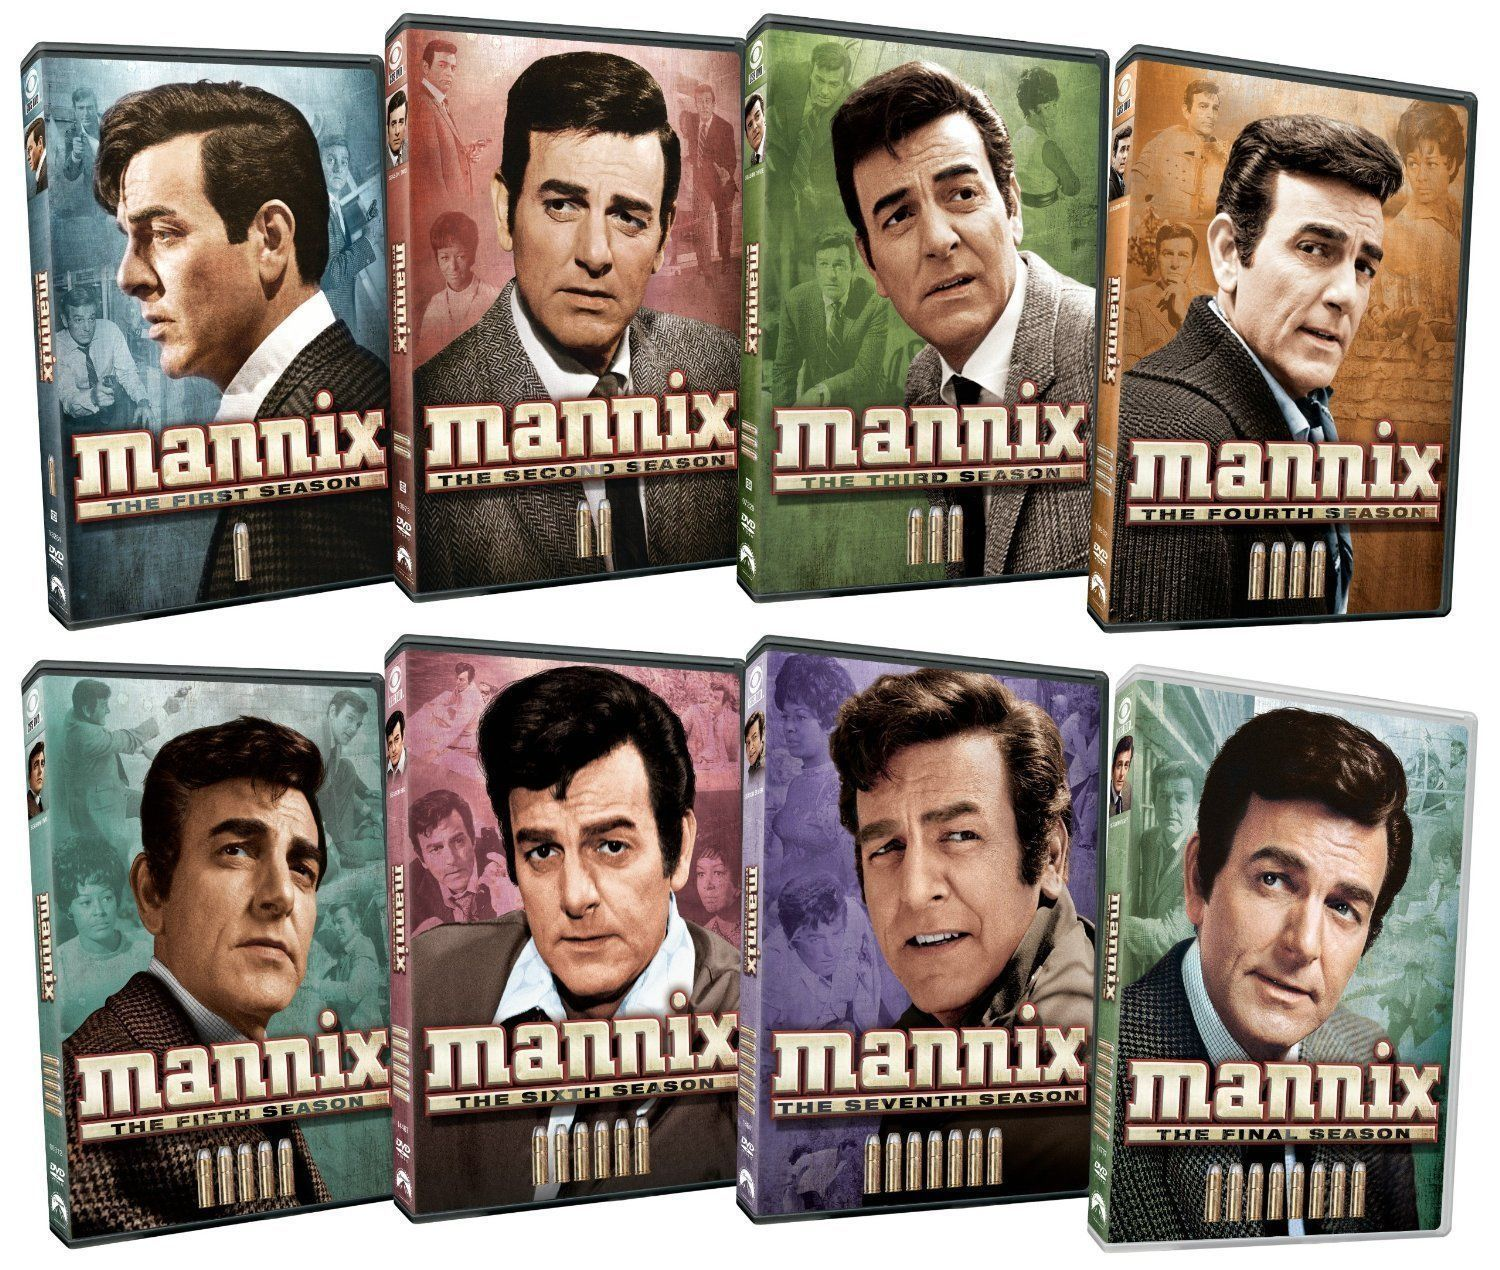 Mannix Complete Series  Season 1-8 (1 2 3 4 5 6 7 & 8) [DVD Sets New]